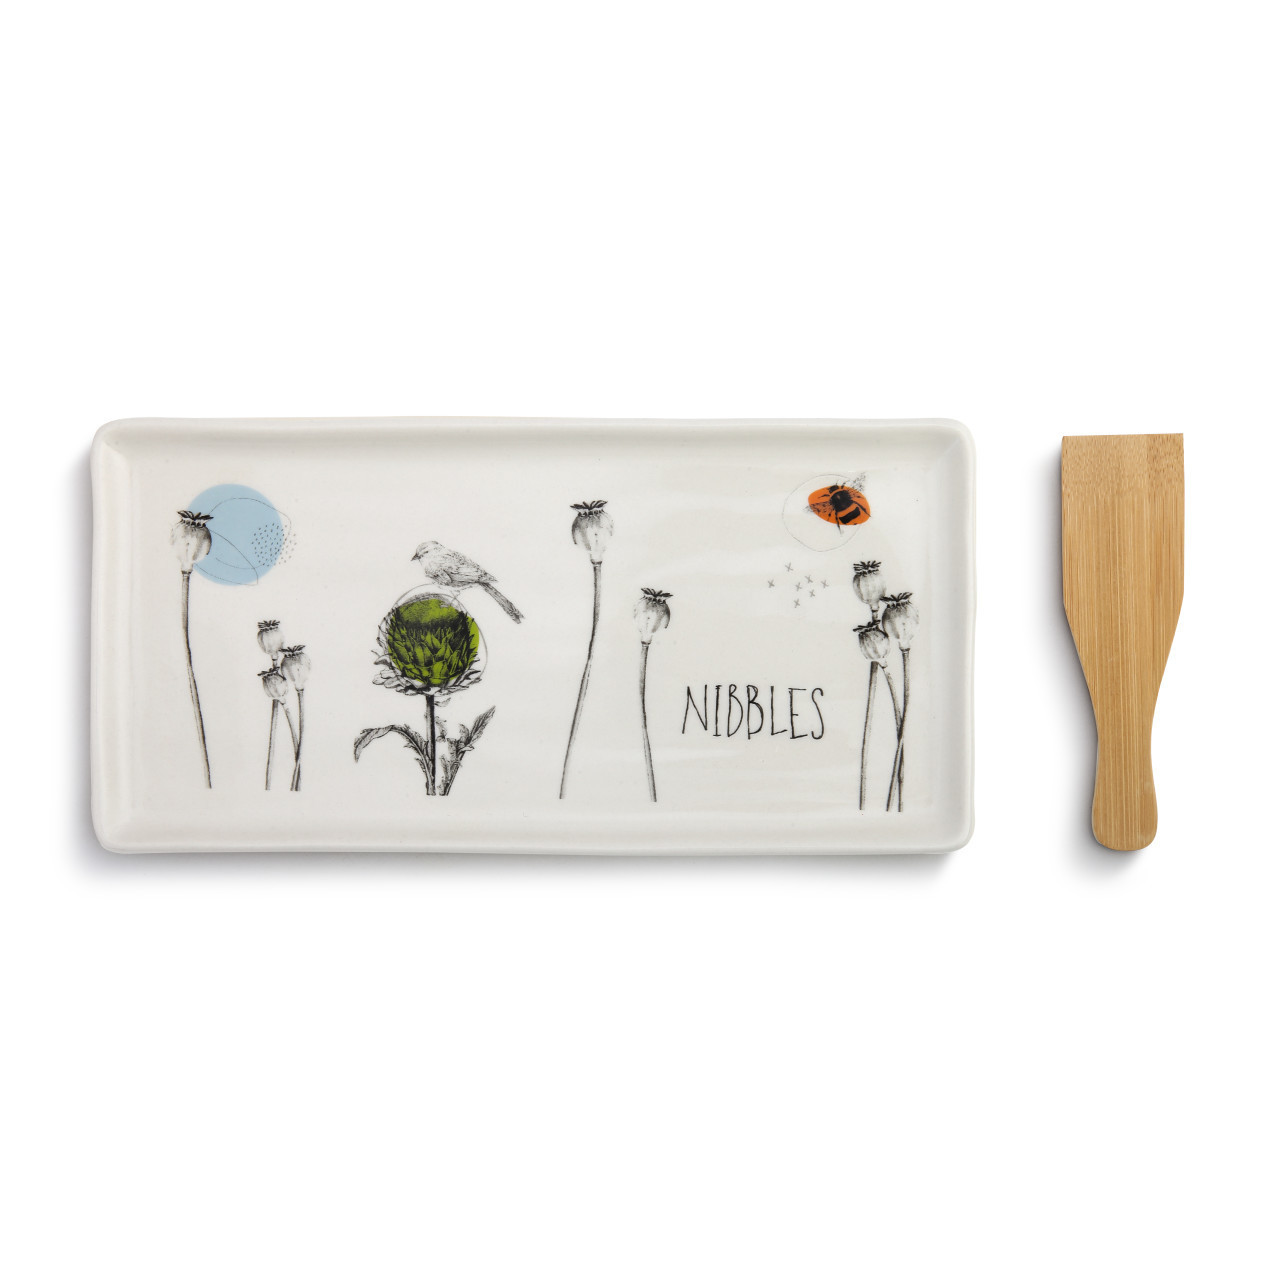 If you have a friend that loves to cook or host often, the Nibbles Appetizer Tray with Spatula from the ByDesign Serving Collection will be an excellent addition to their repertoire. Made from glazed stoneware, this serving tray is an ideal size for serving bite-sized morsels before dinner or afterwards for dessert.